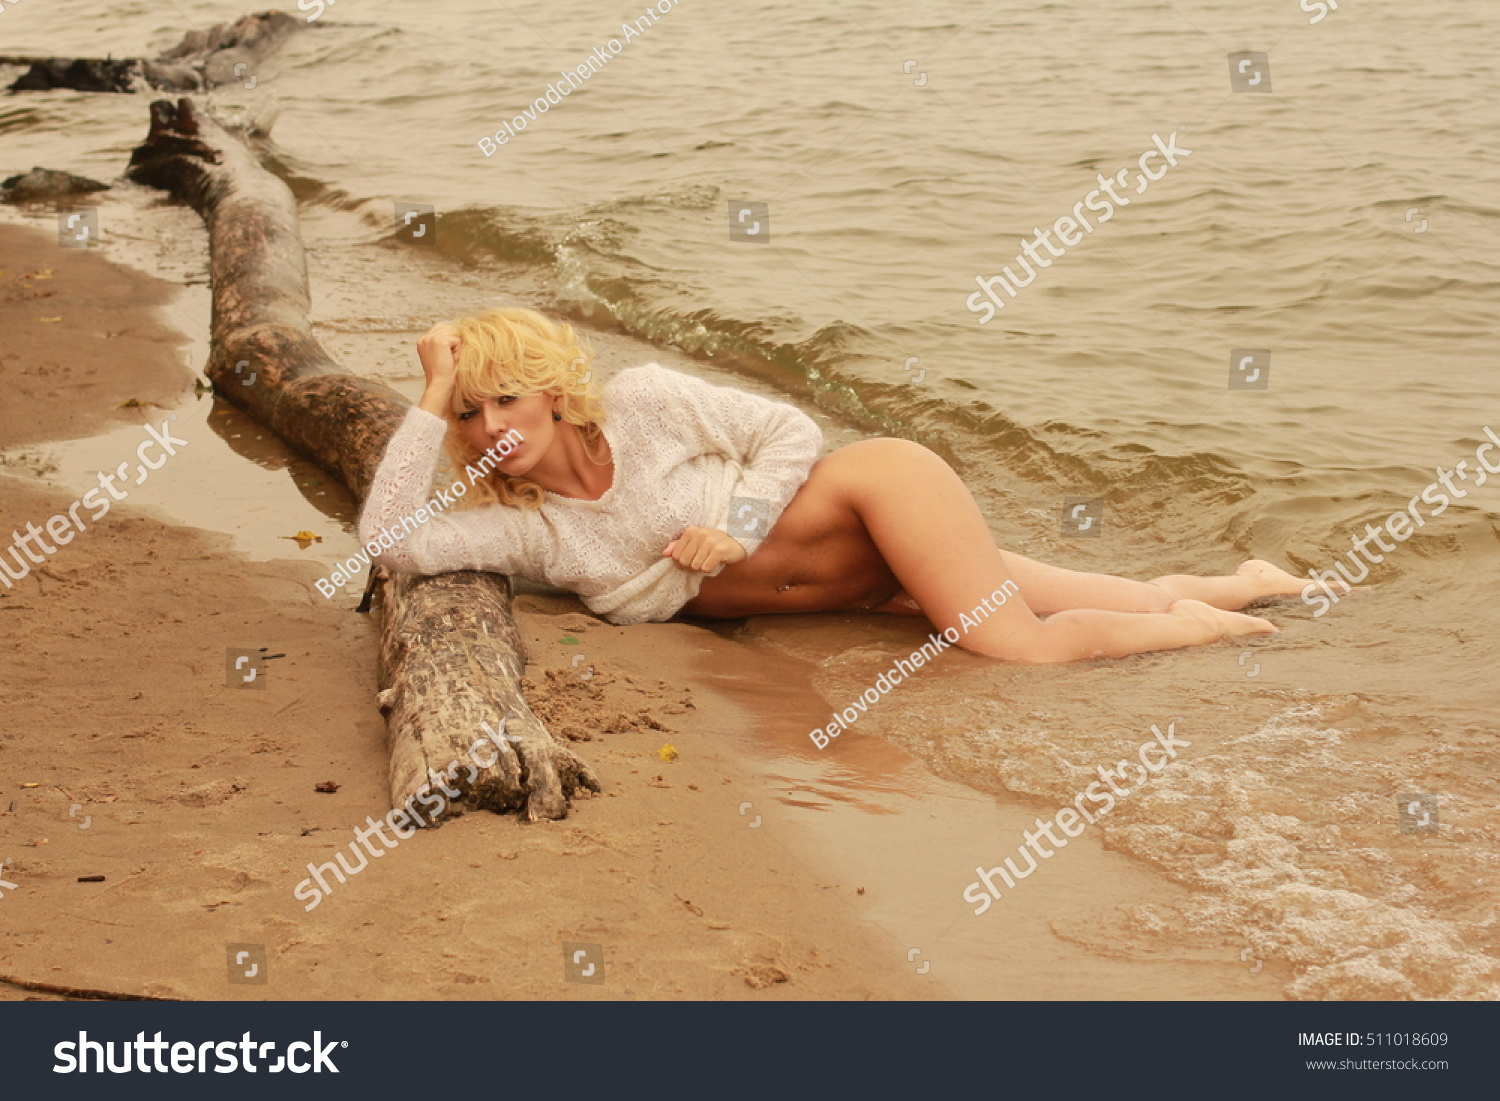 Nude vacation Vacation Wife